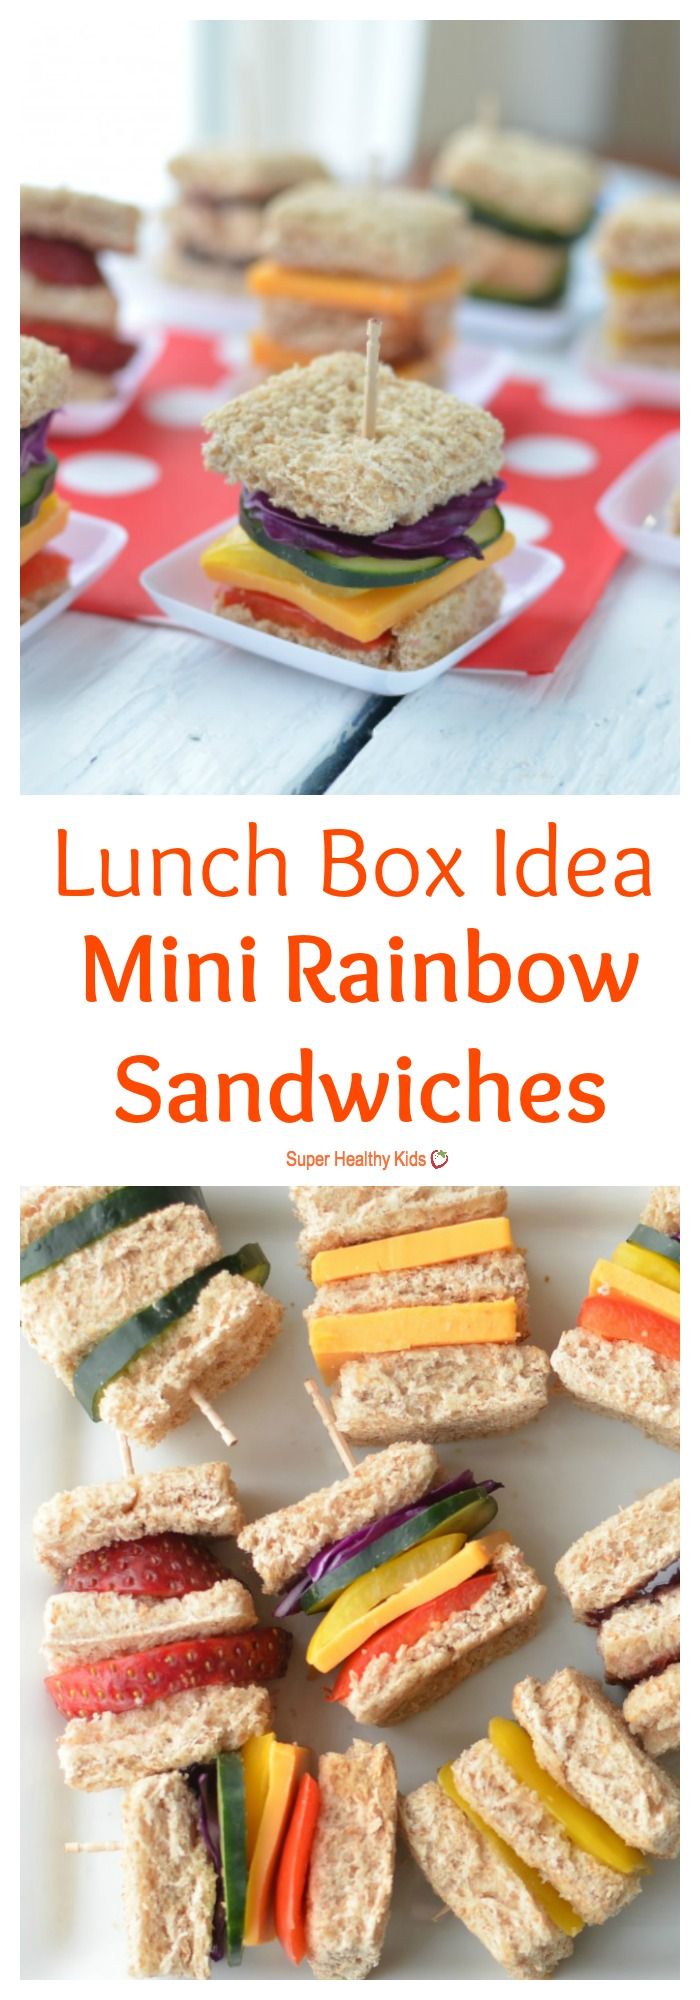 FOOD - Lunch Box Idea: Mini Rainbow Sandwiches. Lunch box idea using a variety of fruits and veggies for mini sandwiches. http://www.superhealthykids.com/lunch-box-idea-mini-rainbow-sandwiches/